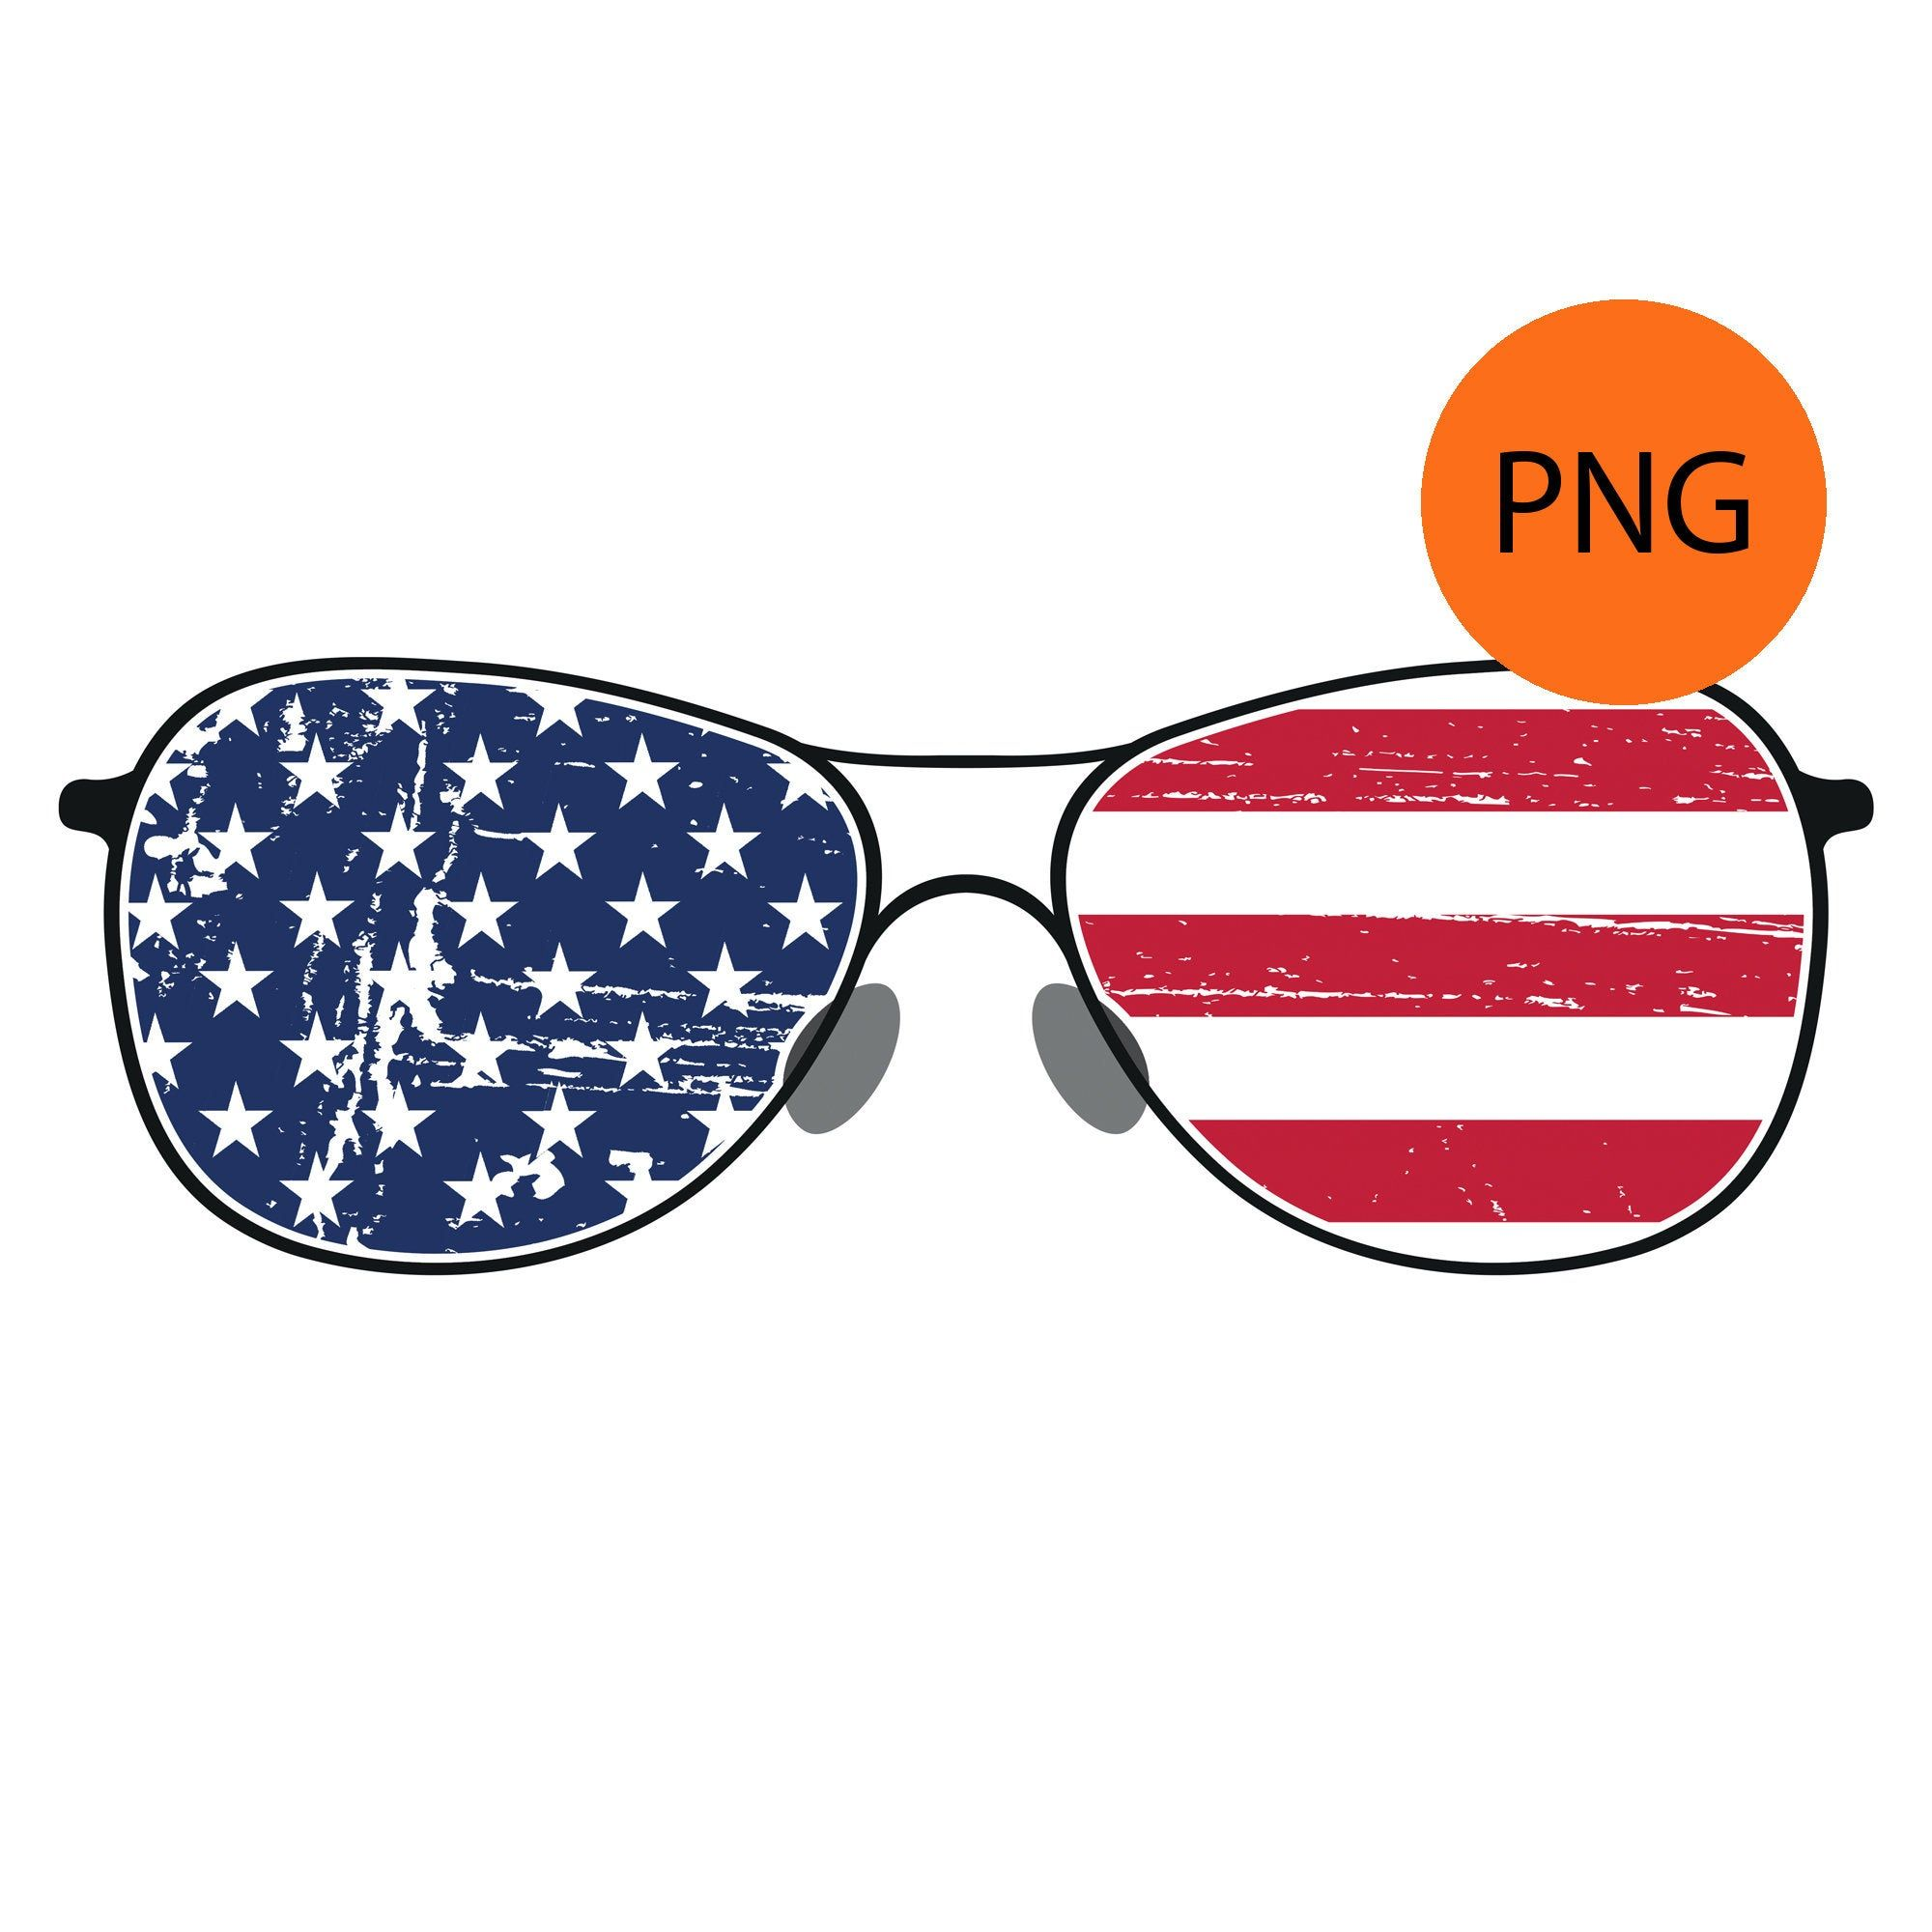 American Flag Sunglasses Shades Png File Patriotic 4th Of July Etsy In 2020 American Flag Sunglasses American Flag Shades Sunglasses